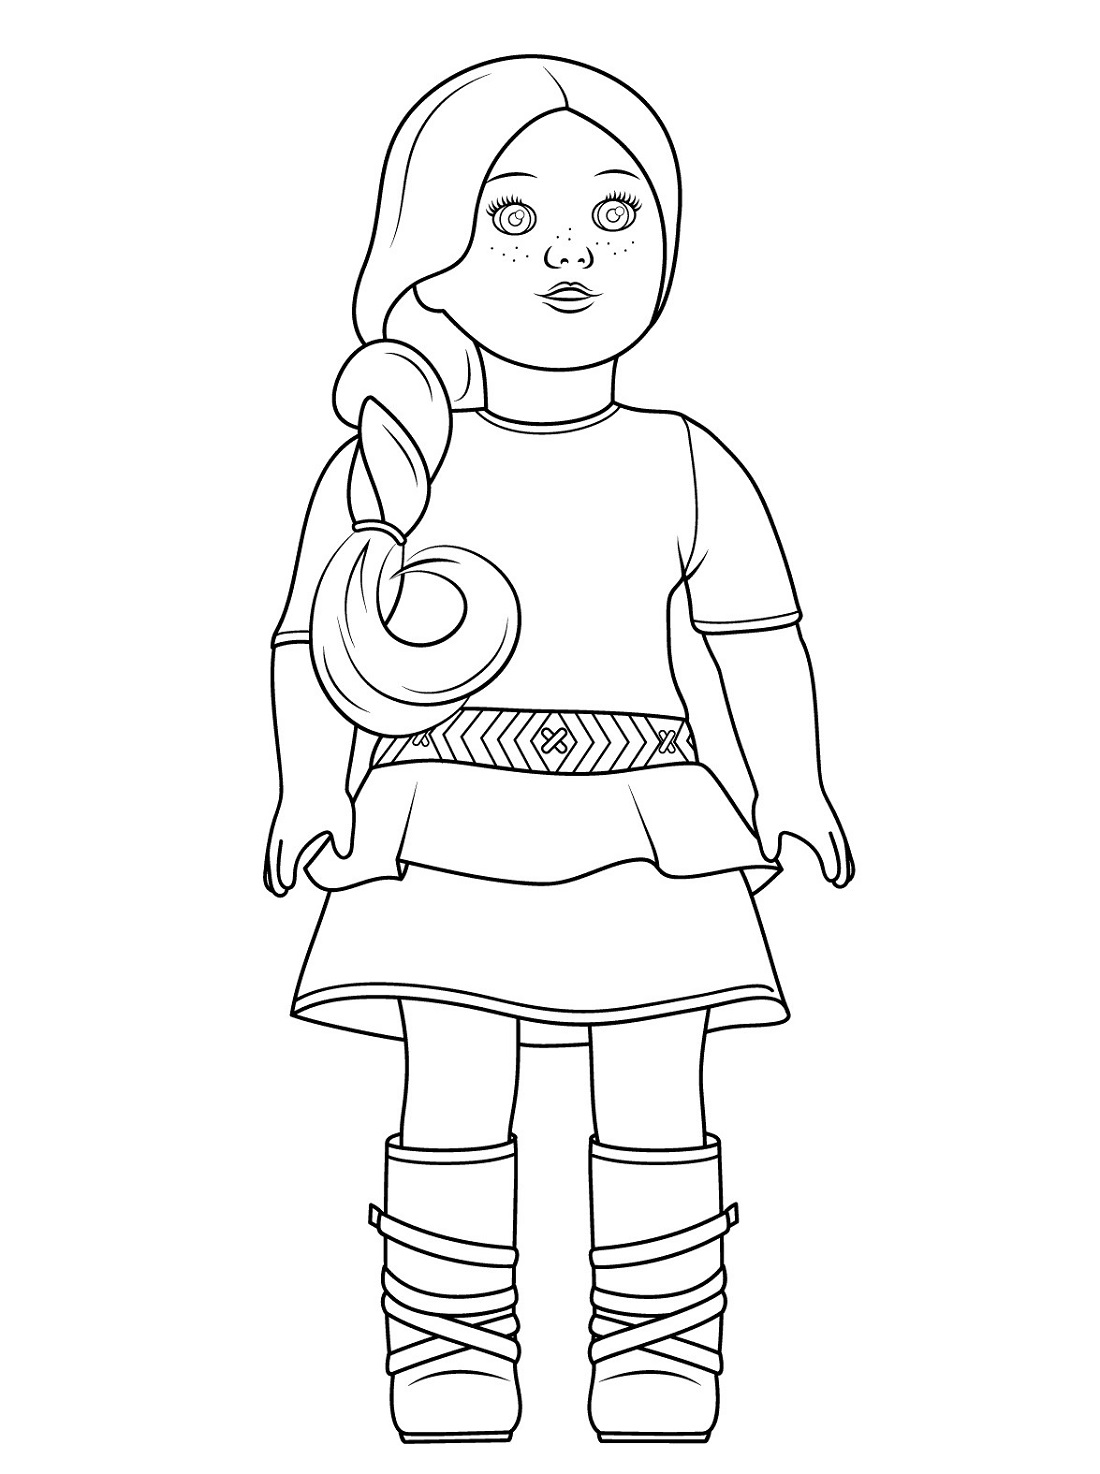 free printable american girl doll coloring pages american girl doll coloring pages printable activity shelter printable american doll pages girl free coloring